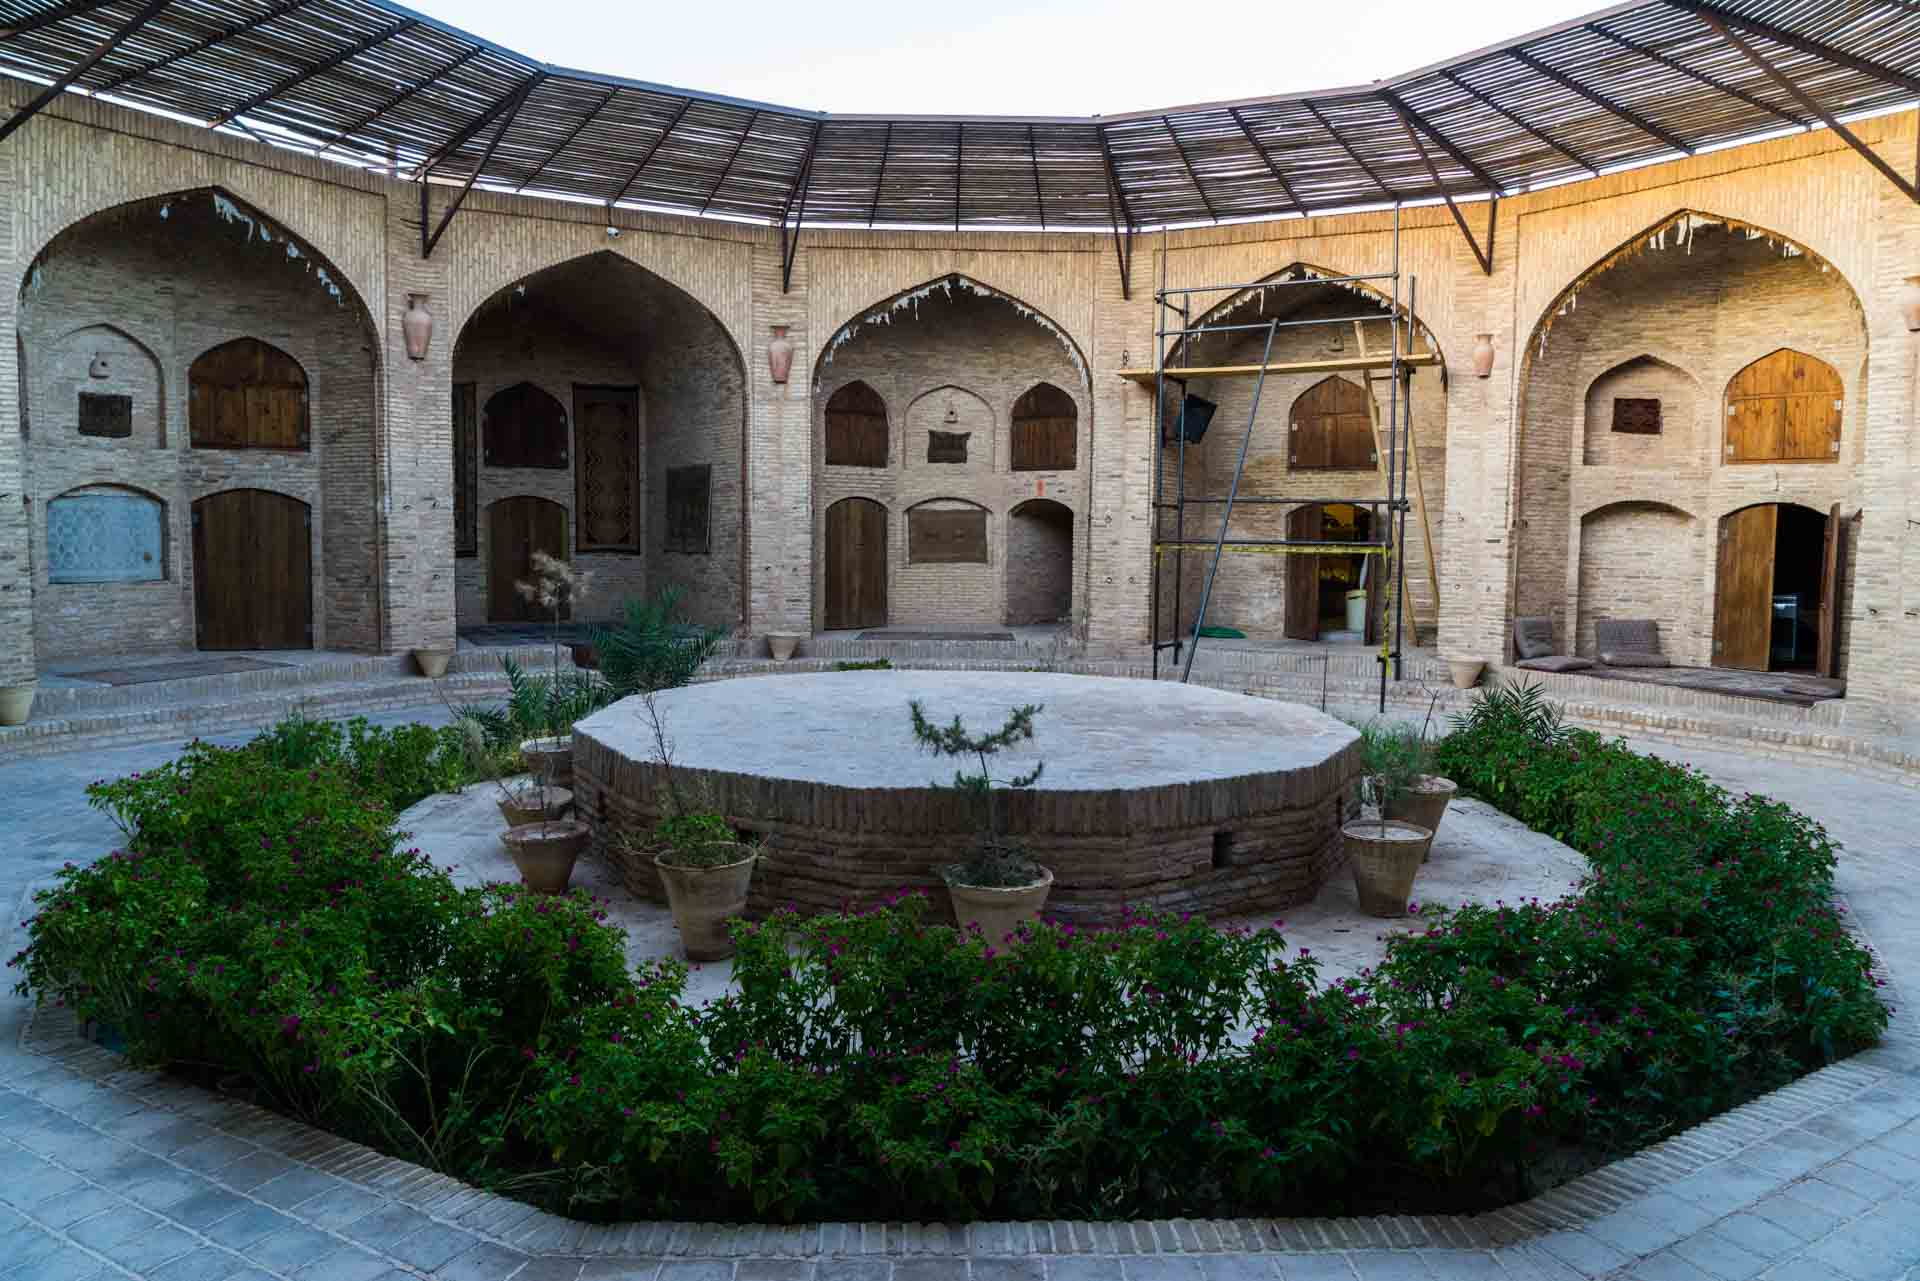 Caravanserai Zeinoddin Courtyard, caravanserai, caravanserai zeinodin,caravanserai zeinoddin, iran, pescart, photo blog, travel blog, blog, photo travel blog, enrico pescantini, pescantini